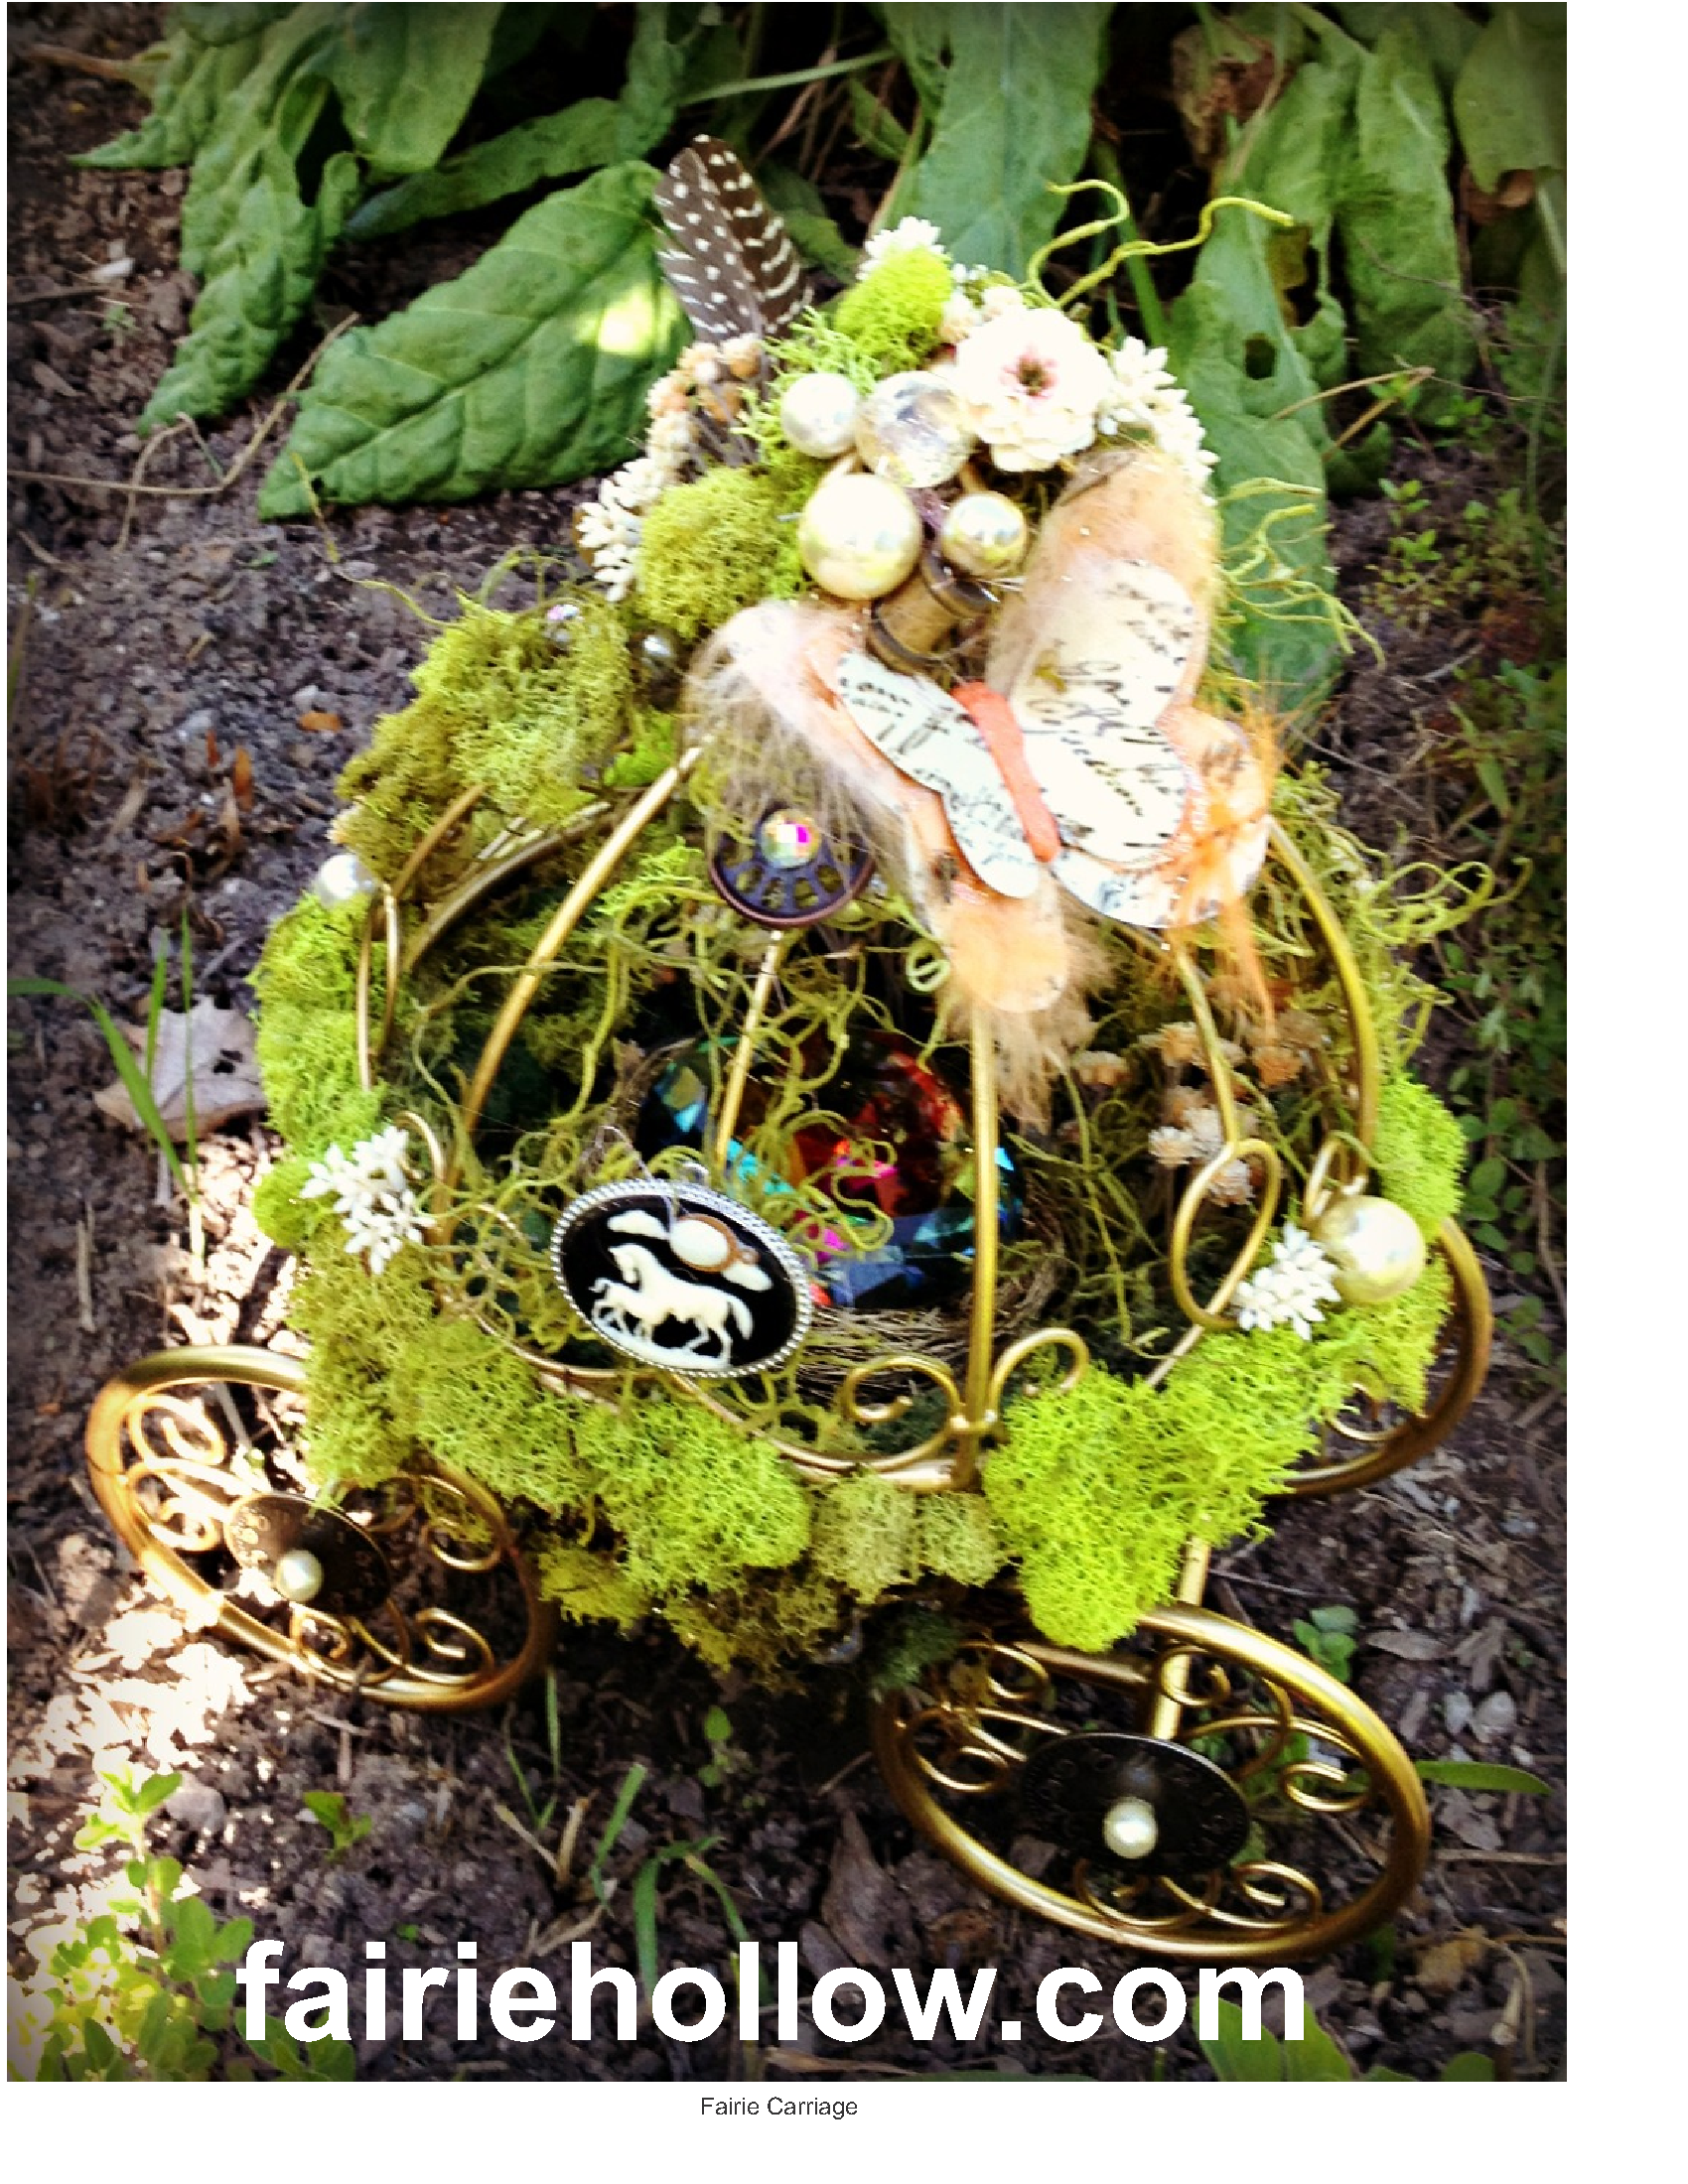 fairie garden party carriage made metal carriage moss feathers butterflies flowers | fairiehollow.com